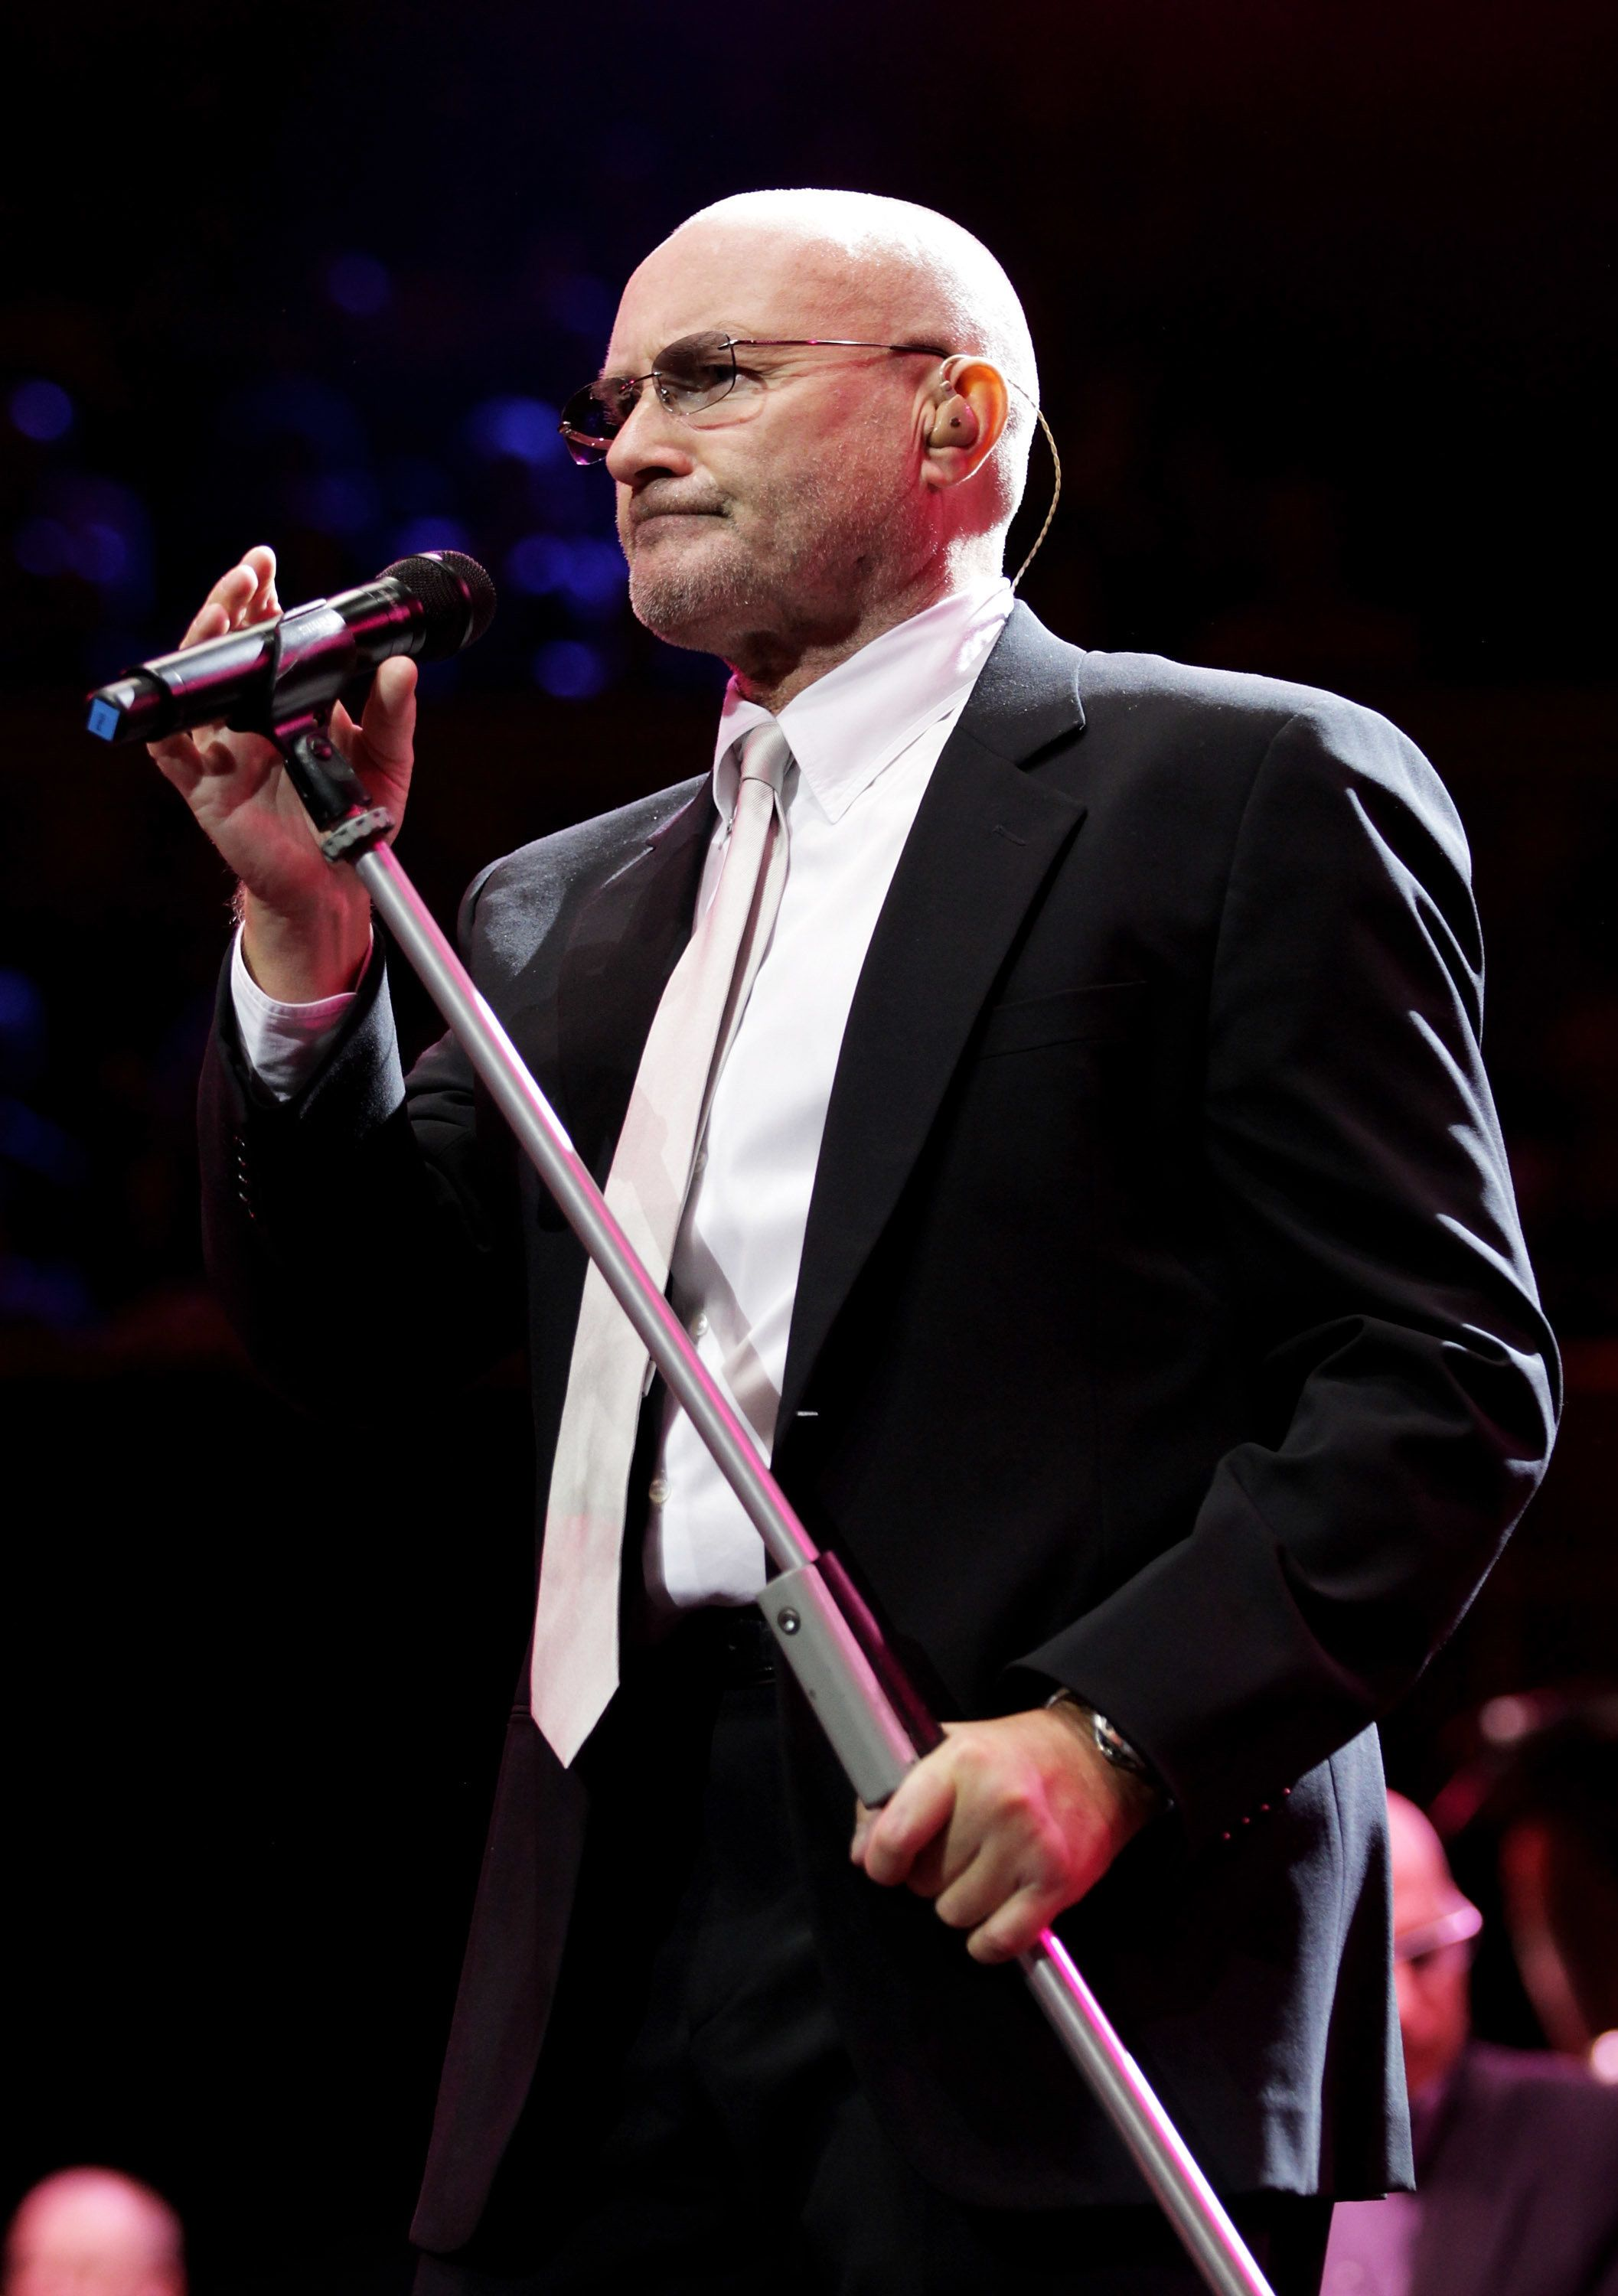 LONDON, ENGLAND - NOVEMBER 17:  Musician Phil Collins performs at The Prince's Trust Rock Gala 2010 supported by Novae at the Royal Albert Hall on November 17, 2010 in London, England.  (Photo by Chris Jackson/Getty Images)